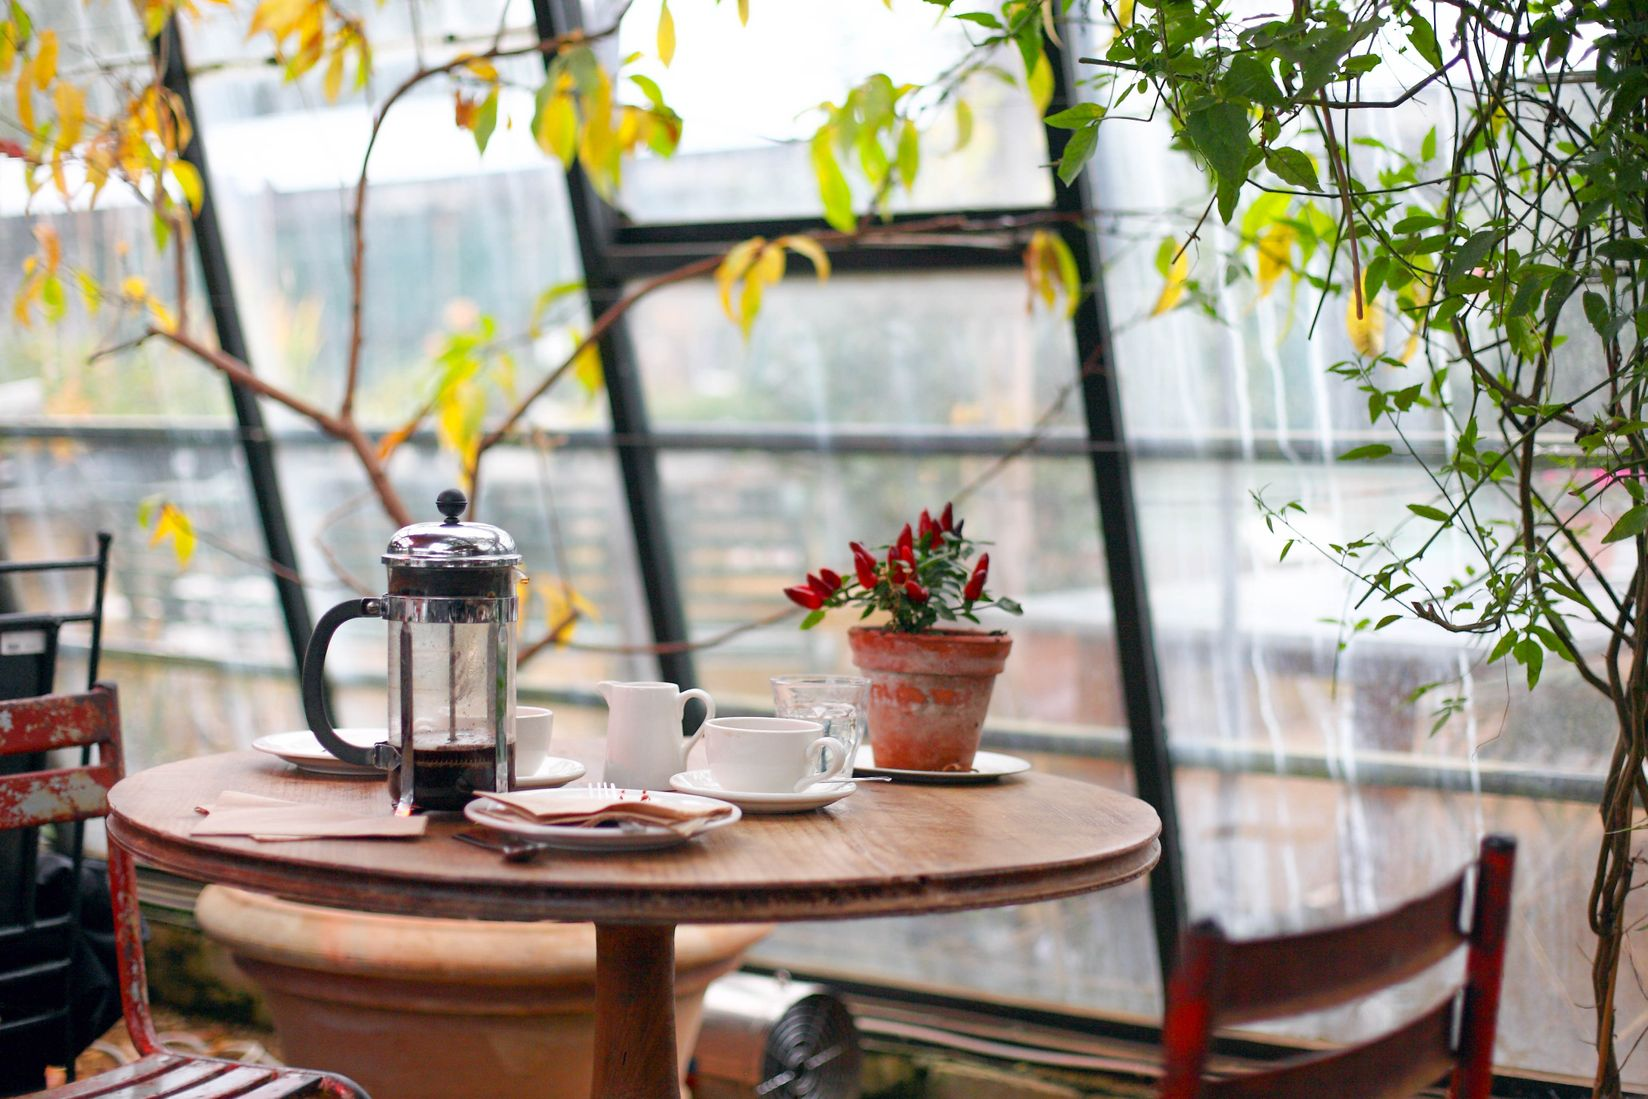 A glass coffee pot, a cup, saucers, napkins, and a potted plant all on a small table with leaves hanging overhead